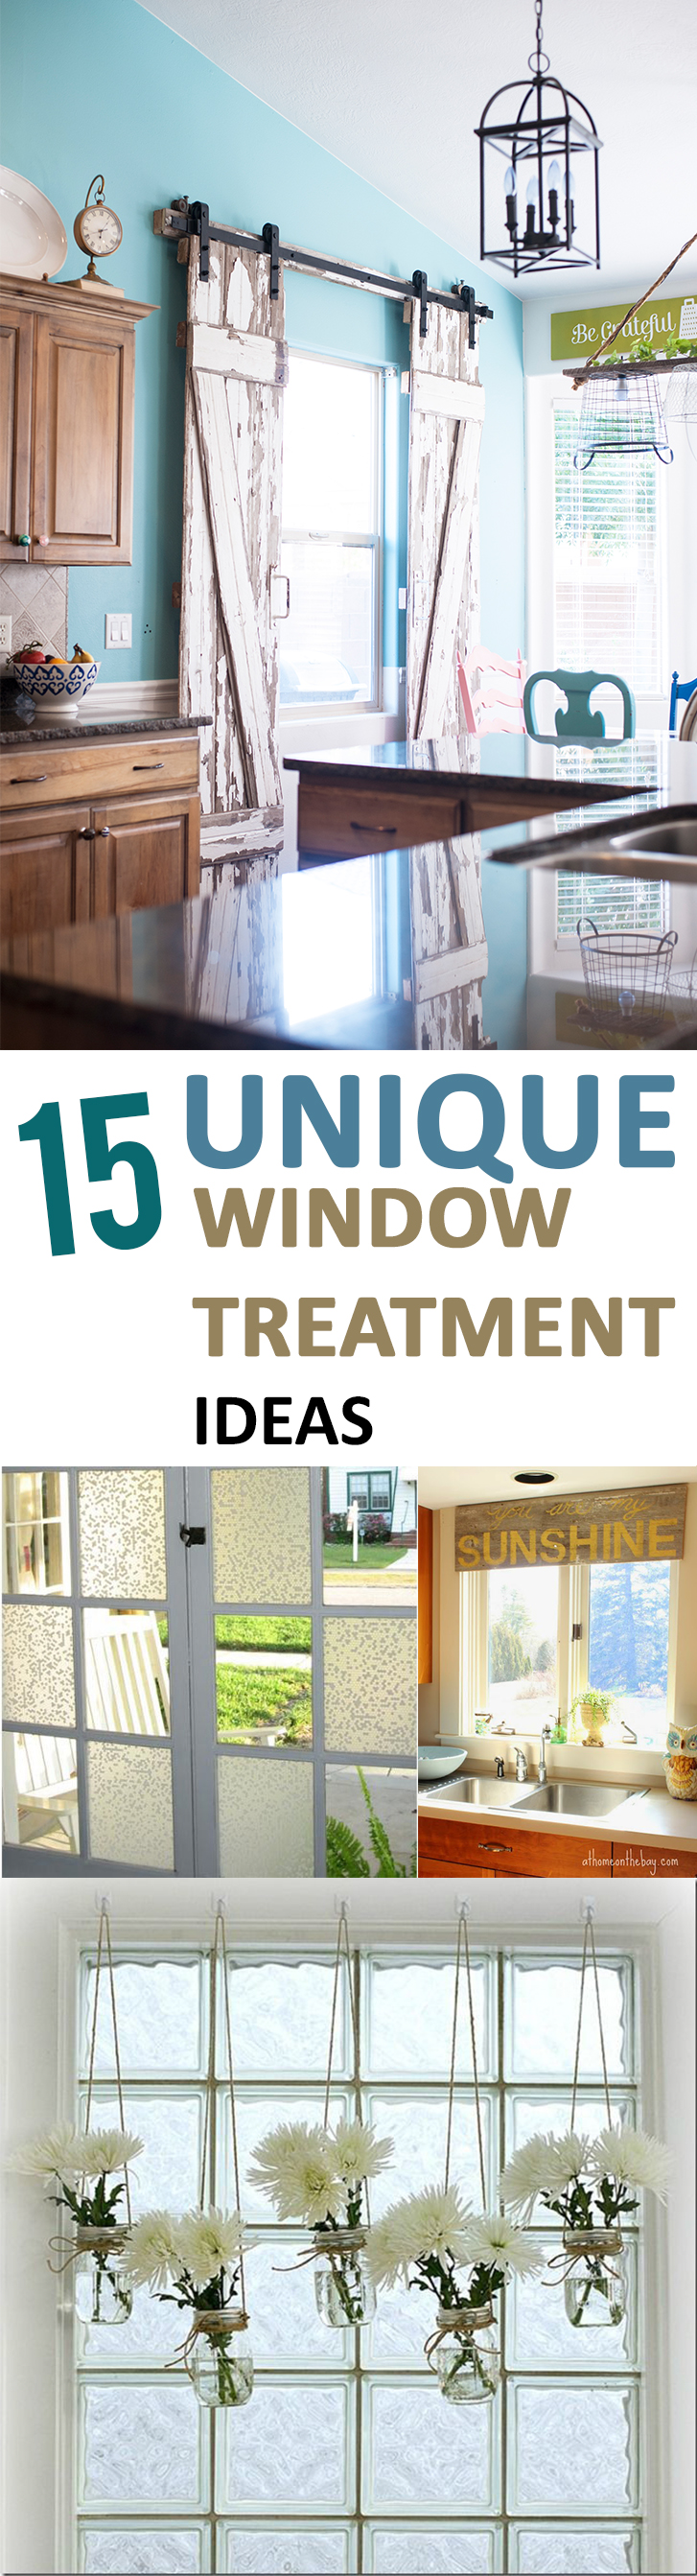 Unique Window Treatments Treatment Ideas Diy Por Pin Home